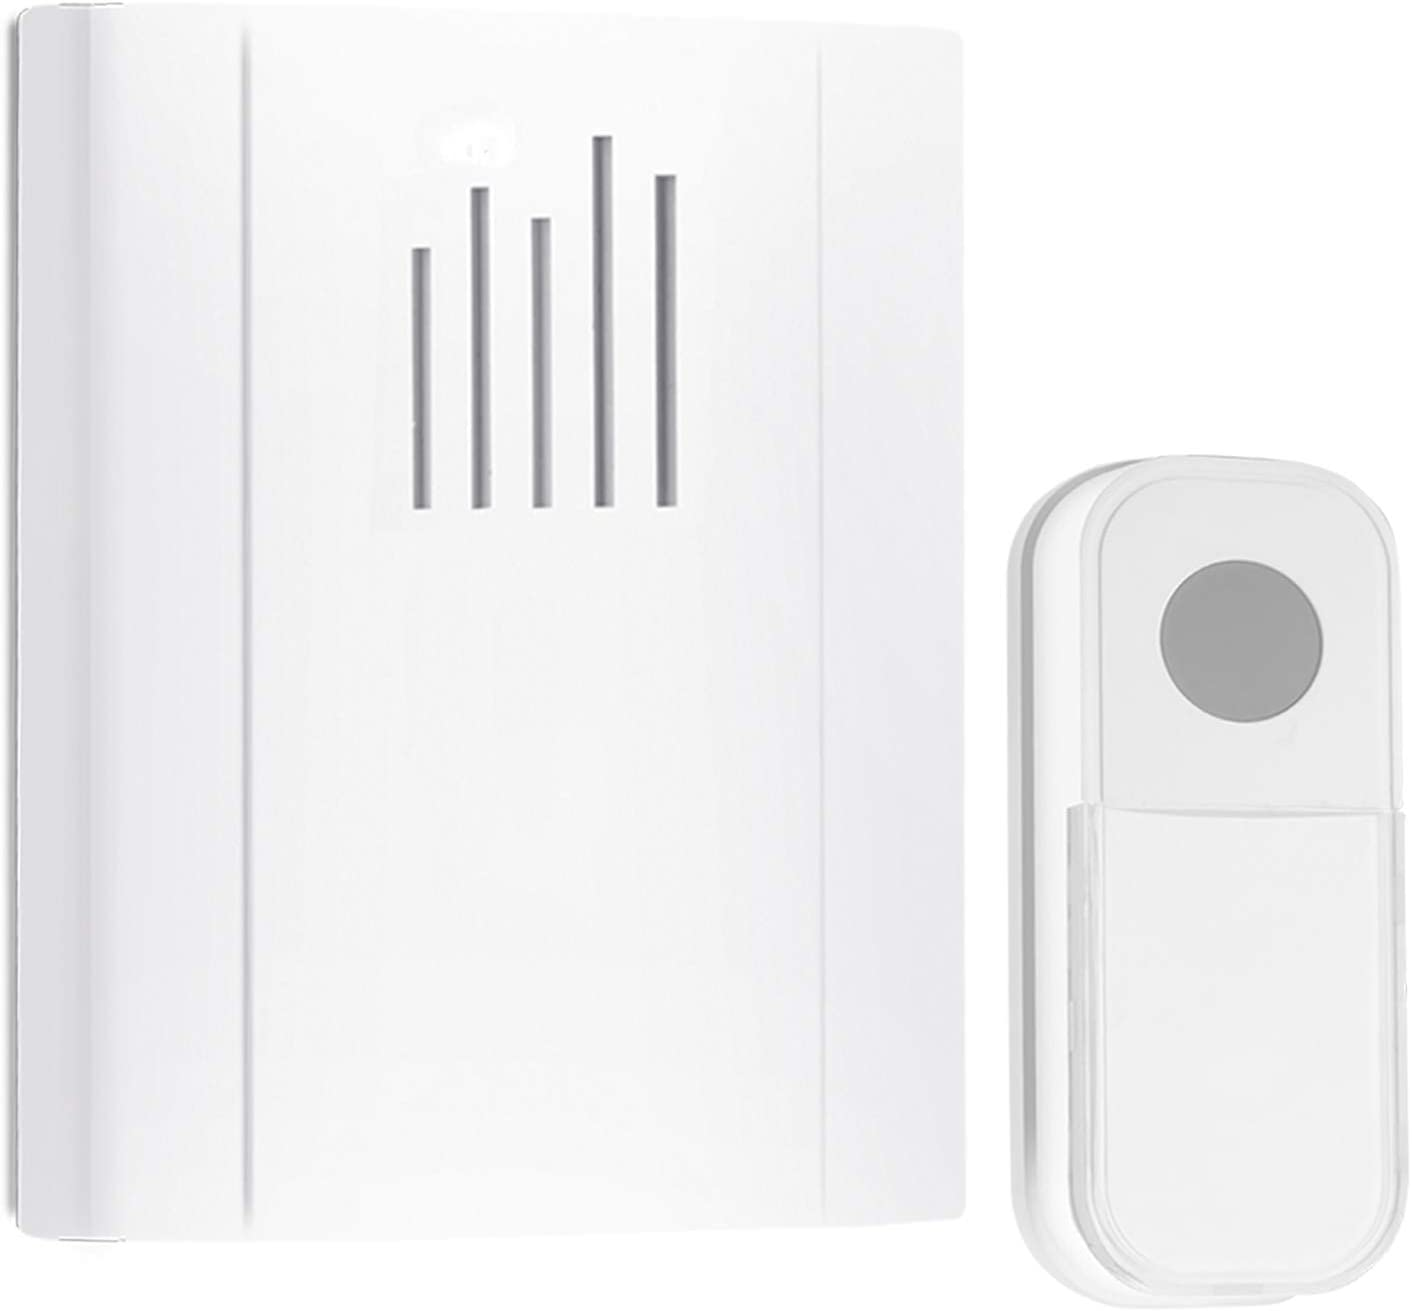 Wireless Doorbell,Waterproof Door Chime Kit Operating 1300 feet with 36 Melodies, Name Plate For Home Office School,98189+90022